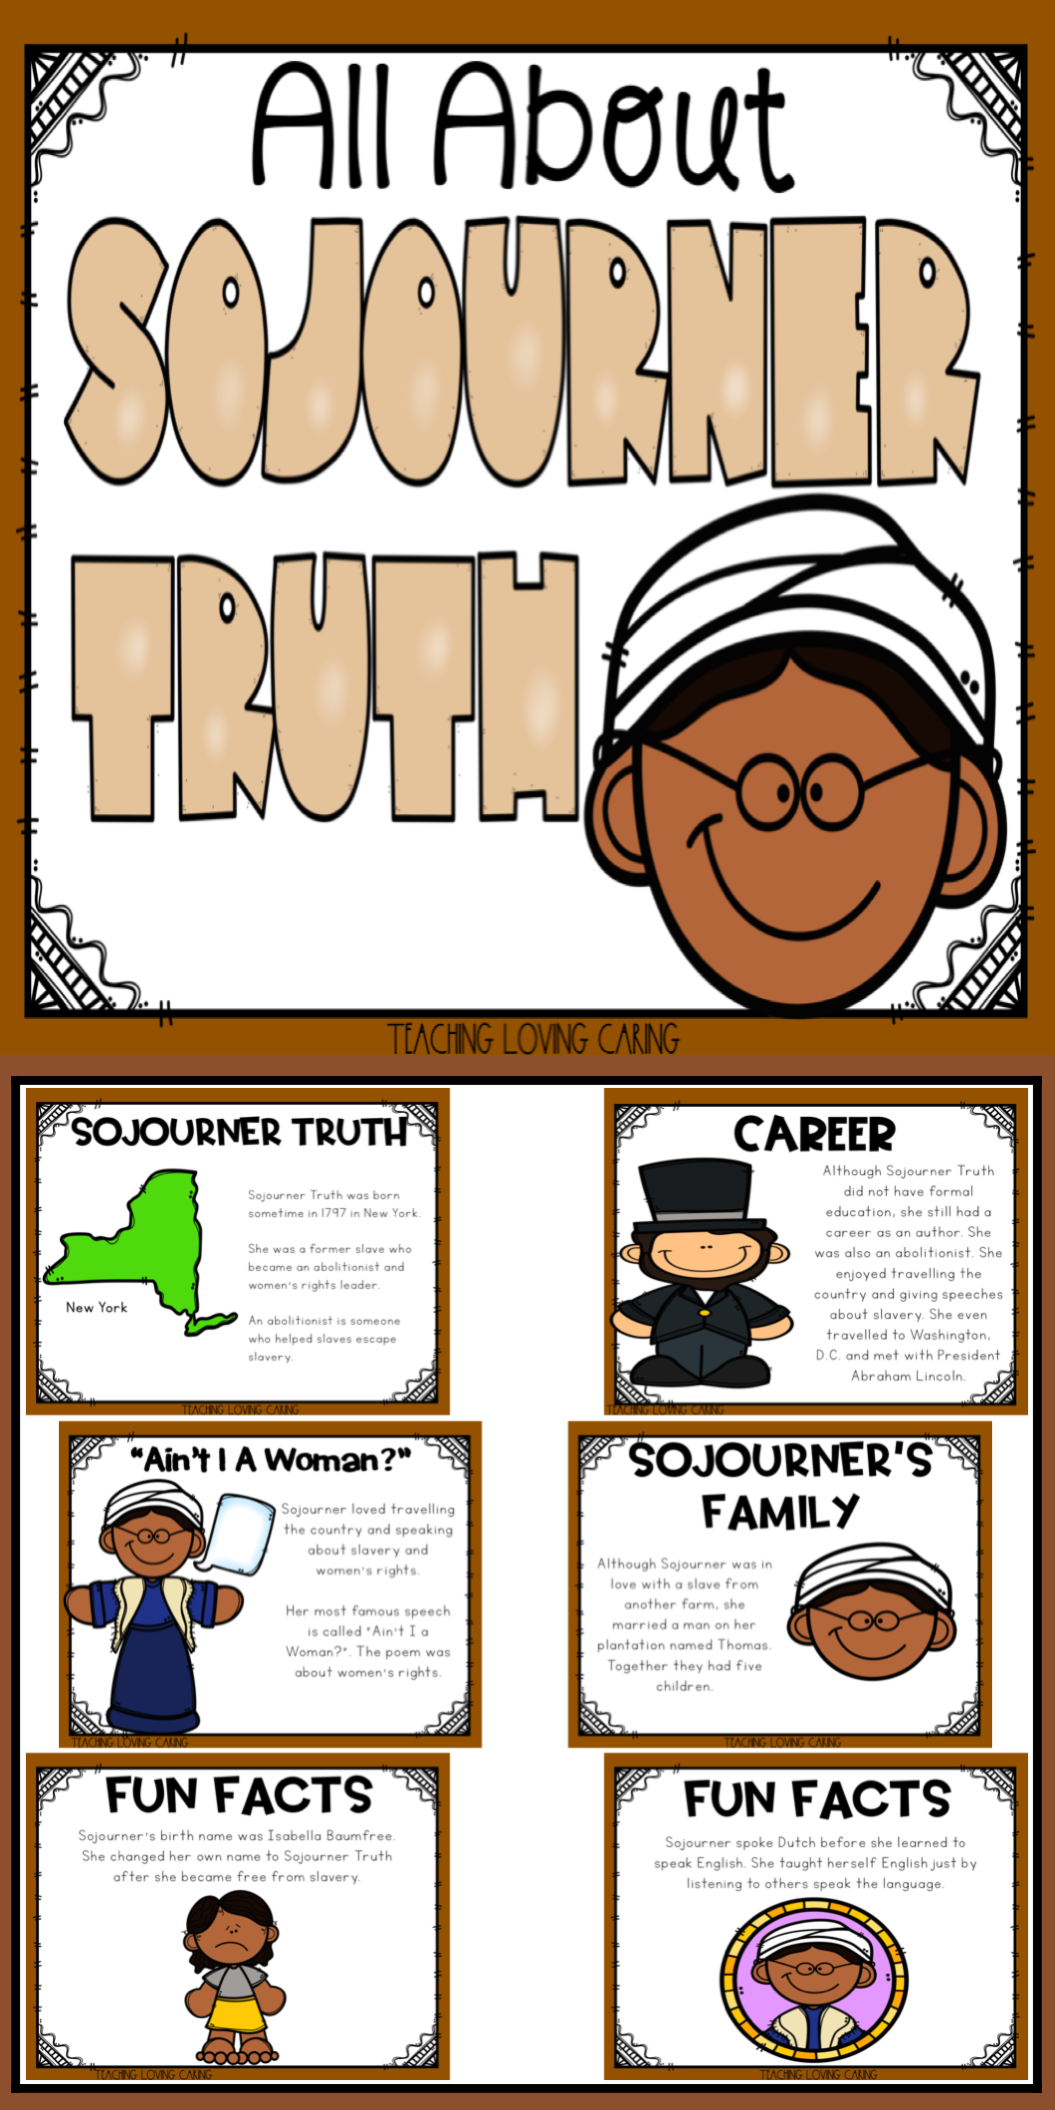 All About Sojourner Truth